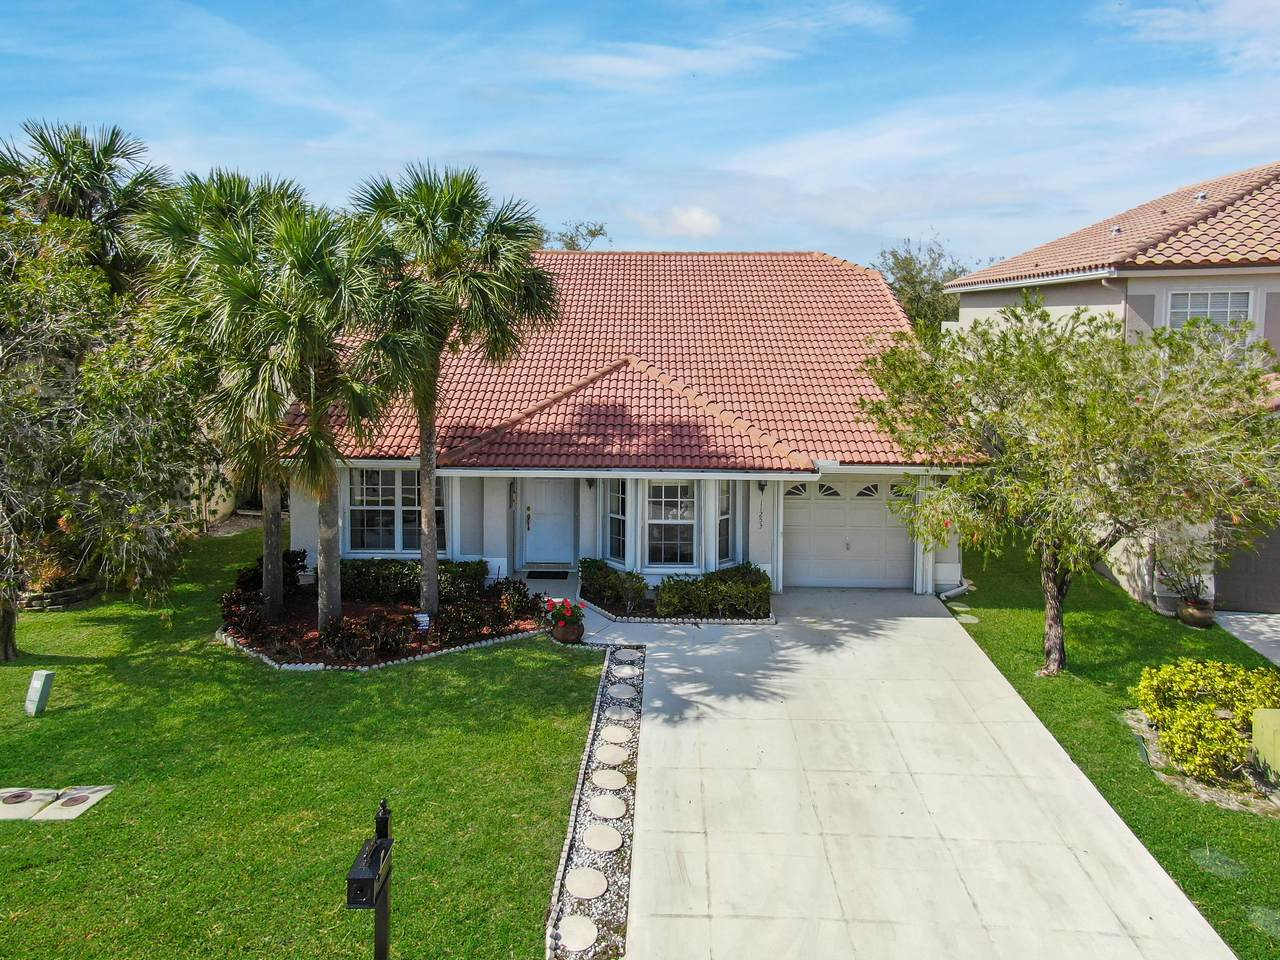 11253 Coral Reef Drive - Photo 1